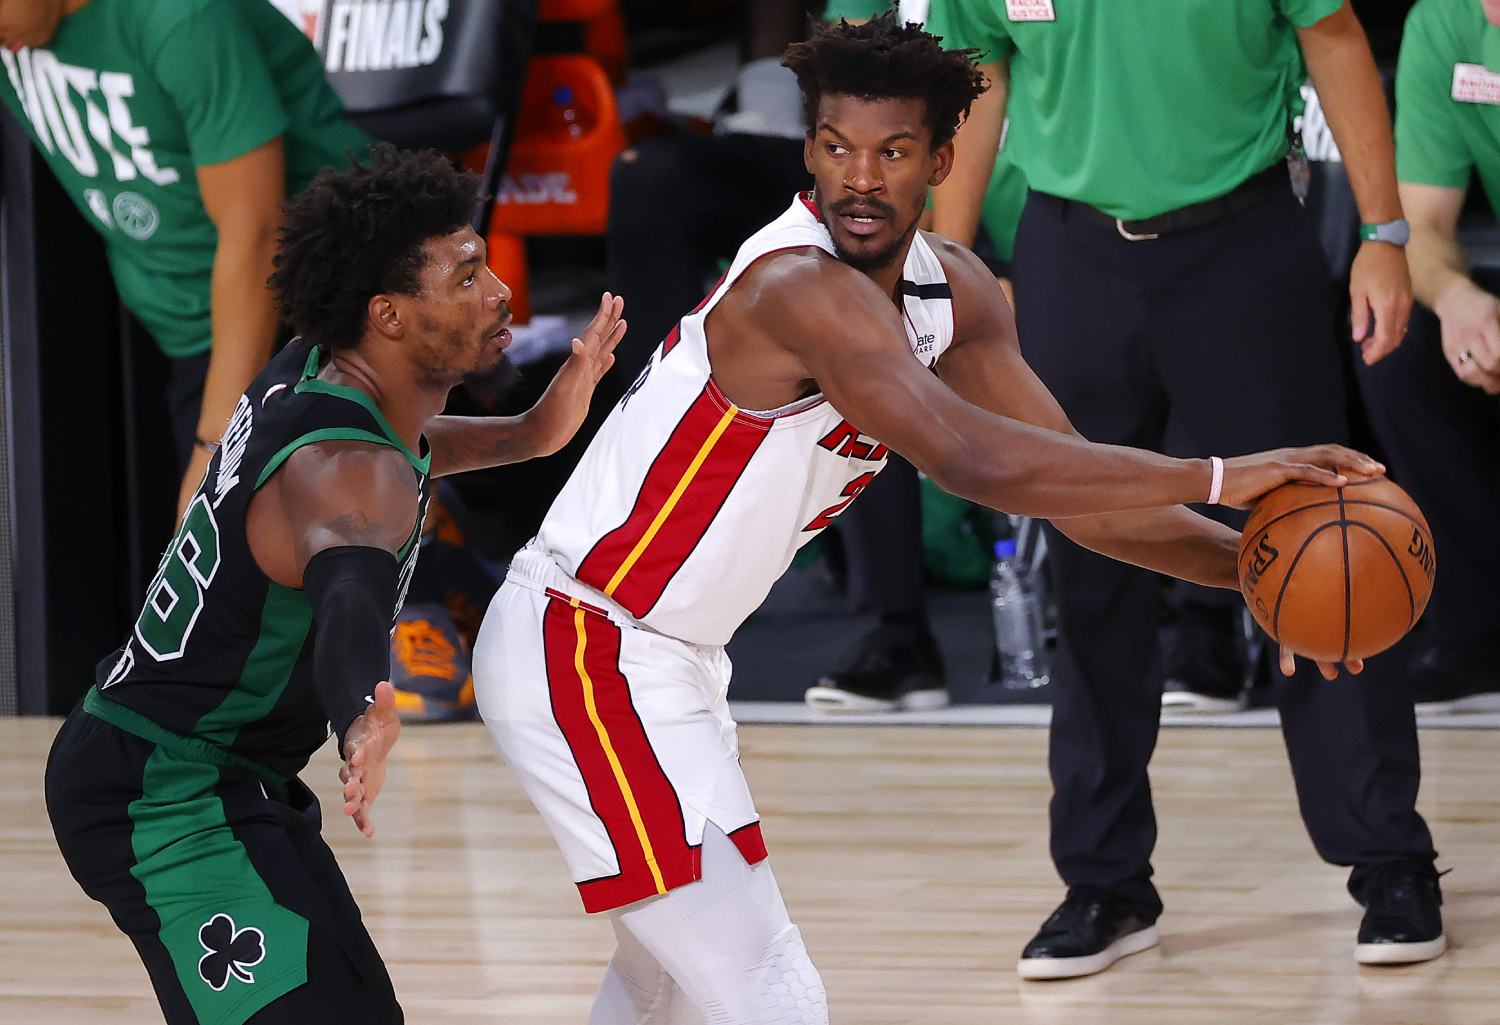 The Boston Celtics had some drama in the locker room after Thursday's loss to the Miami Heat.